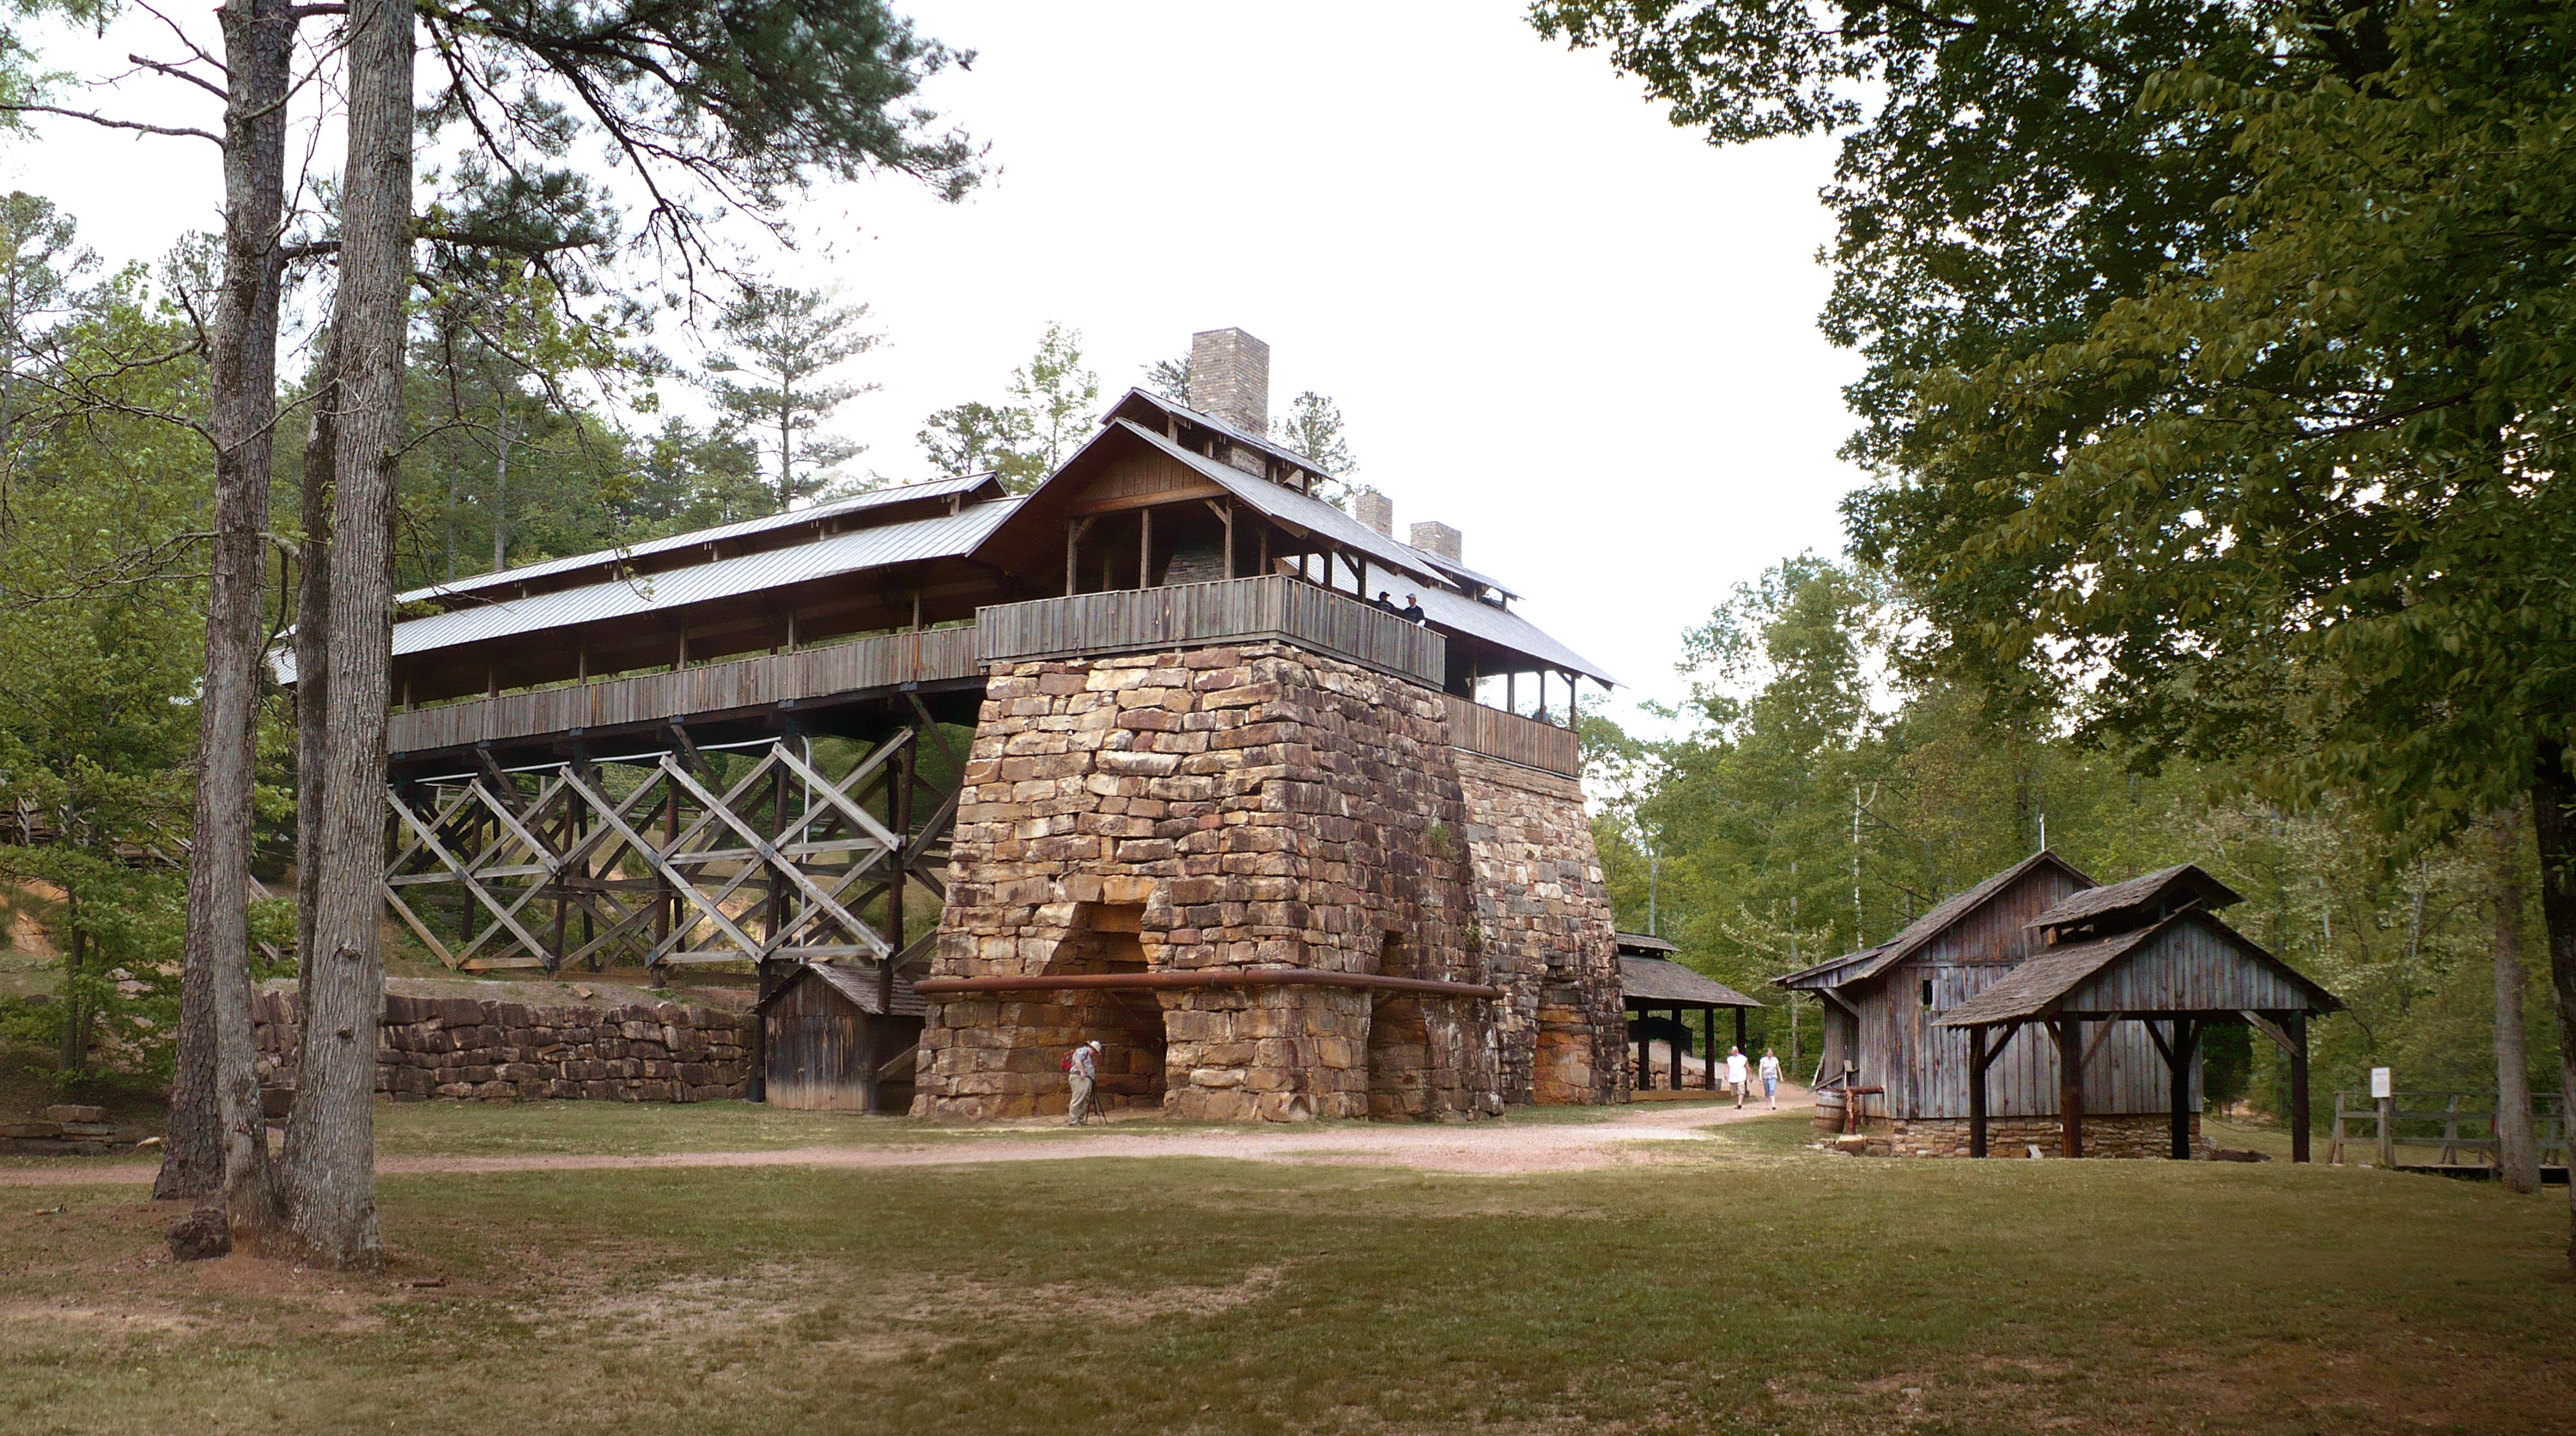 tannehill ironworks historical state park in alabama is